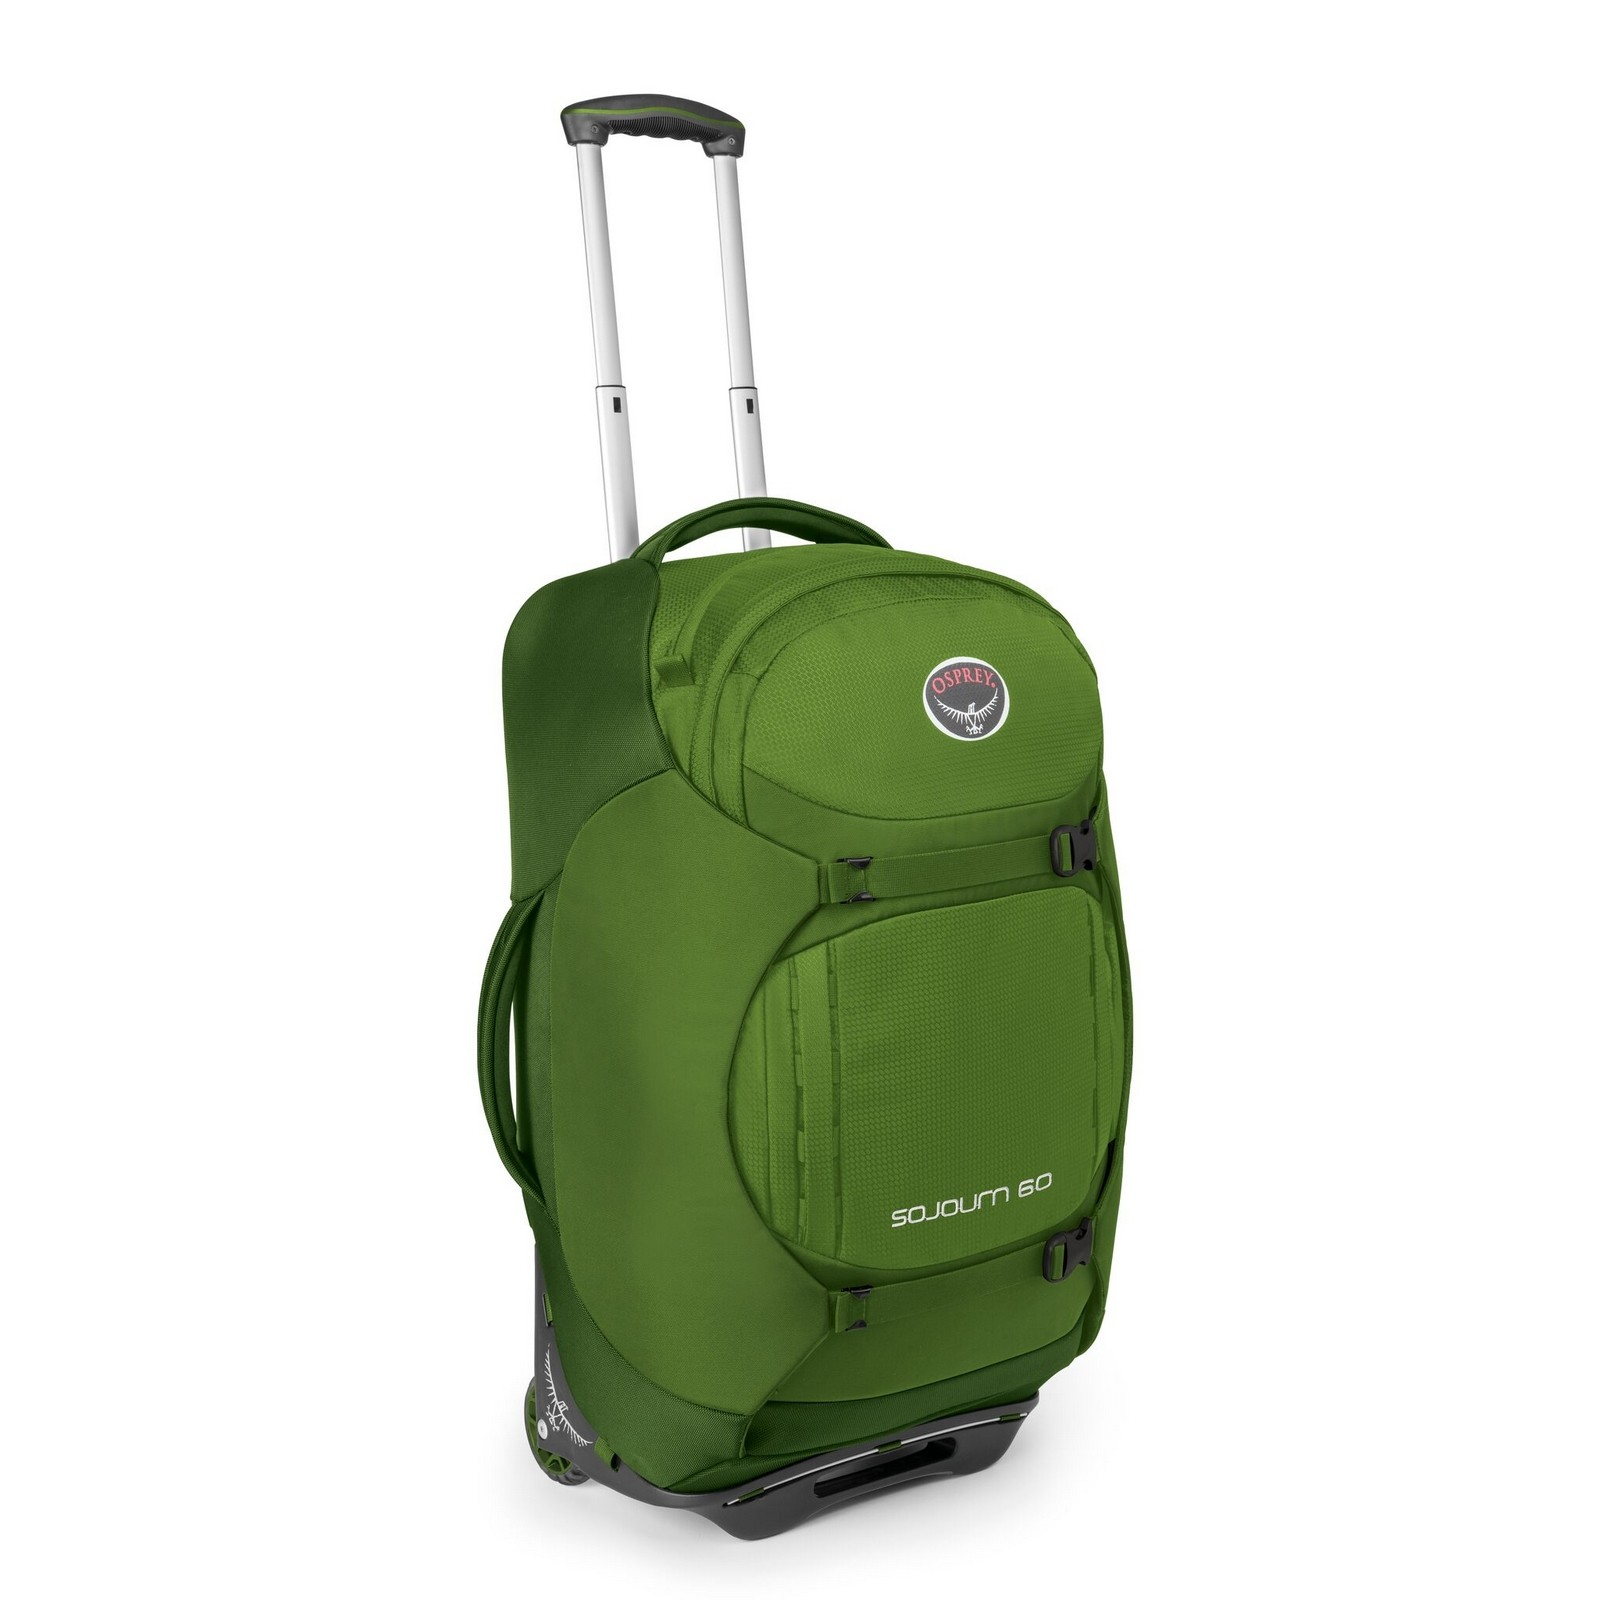 rollentasche rucksack trolley kofferrucksack tasche sojourn 60 von osprey ebay. Black Bedroom Furniture Sets. Home Design Ideas